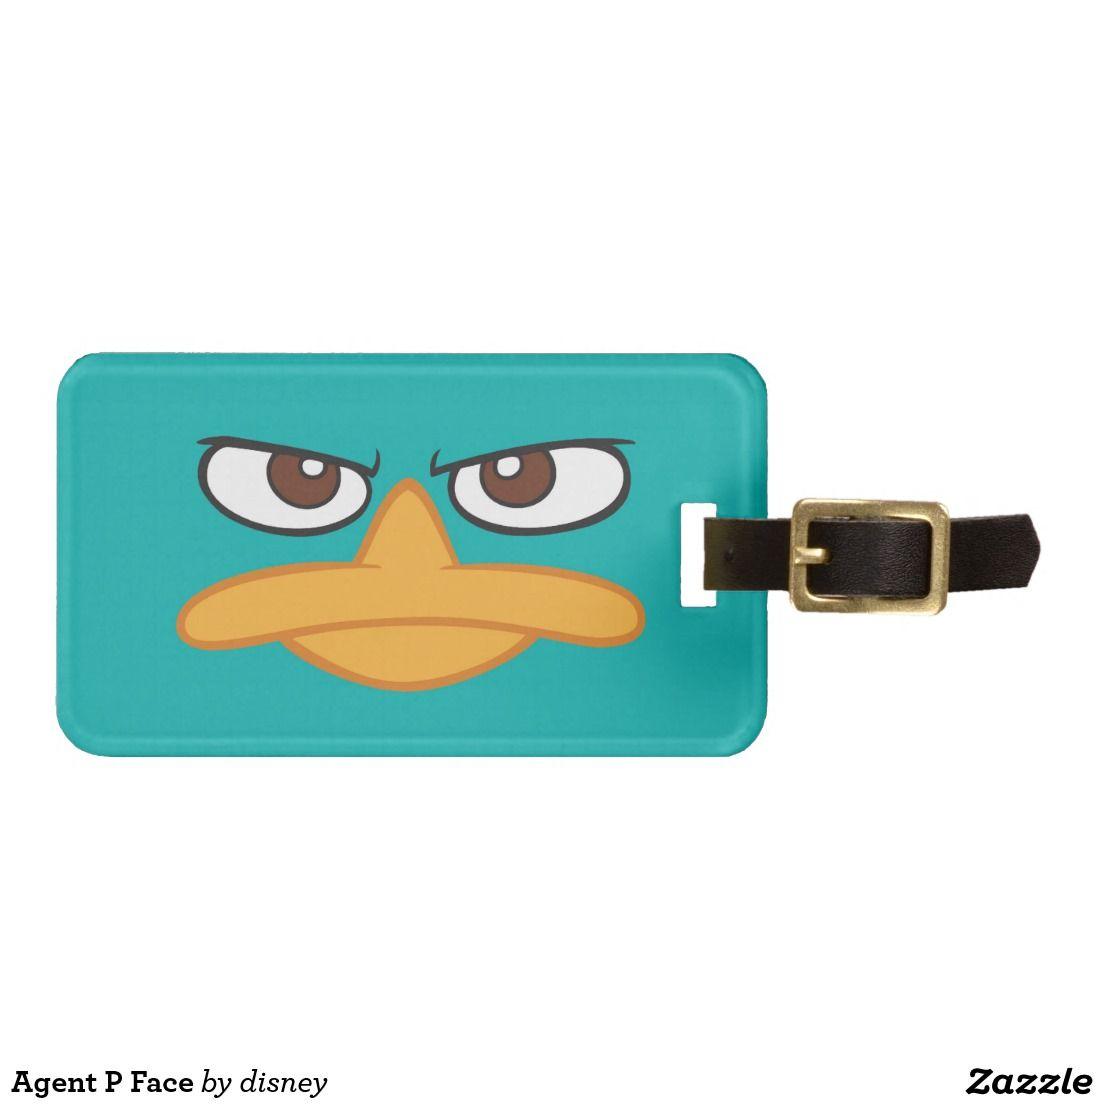 Agent P Face Luggage Tag